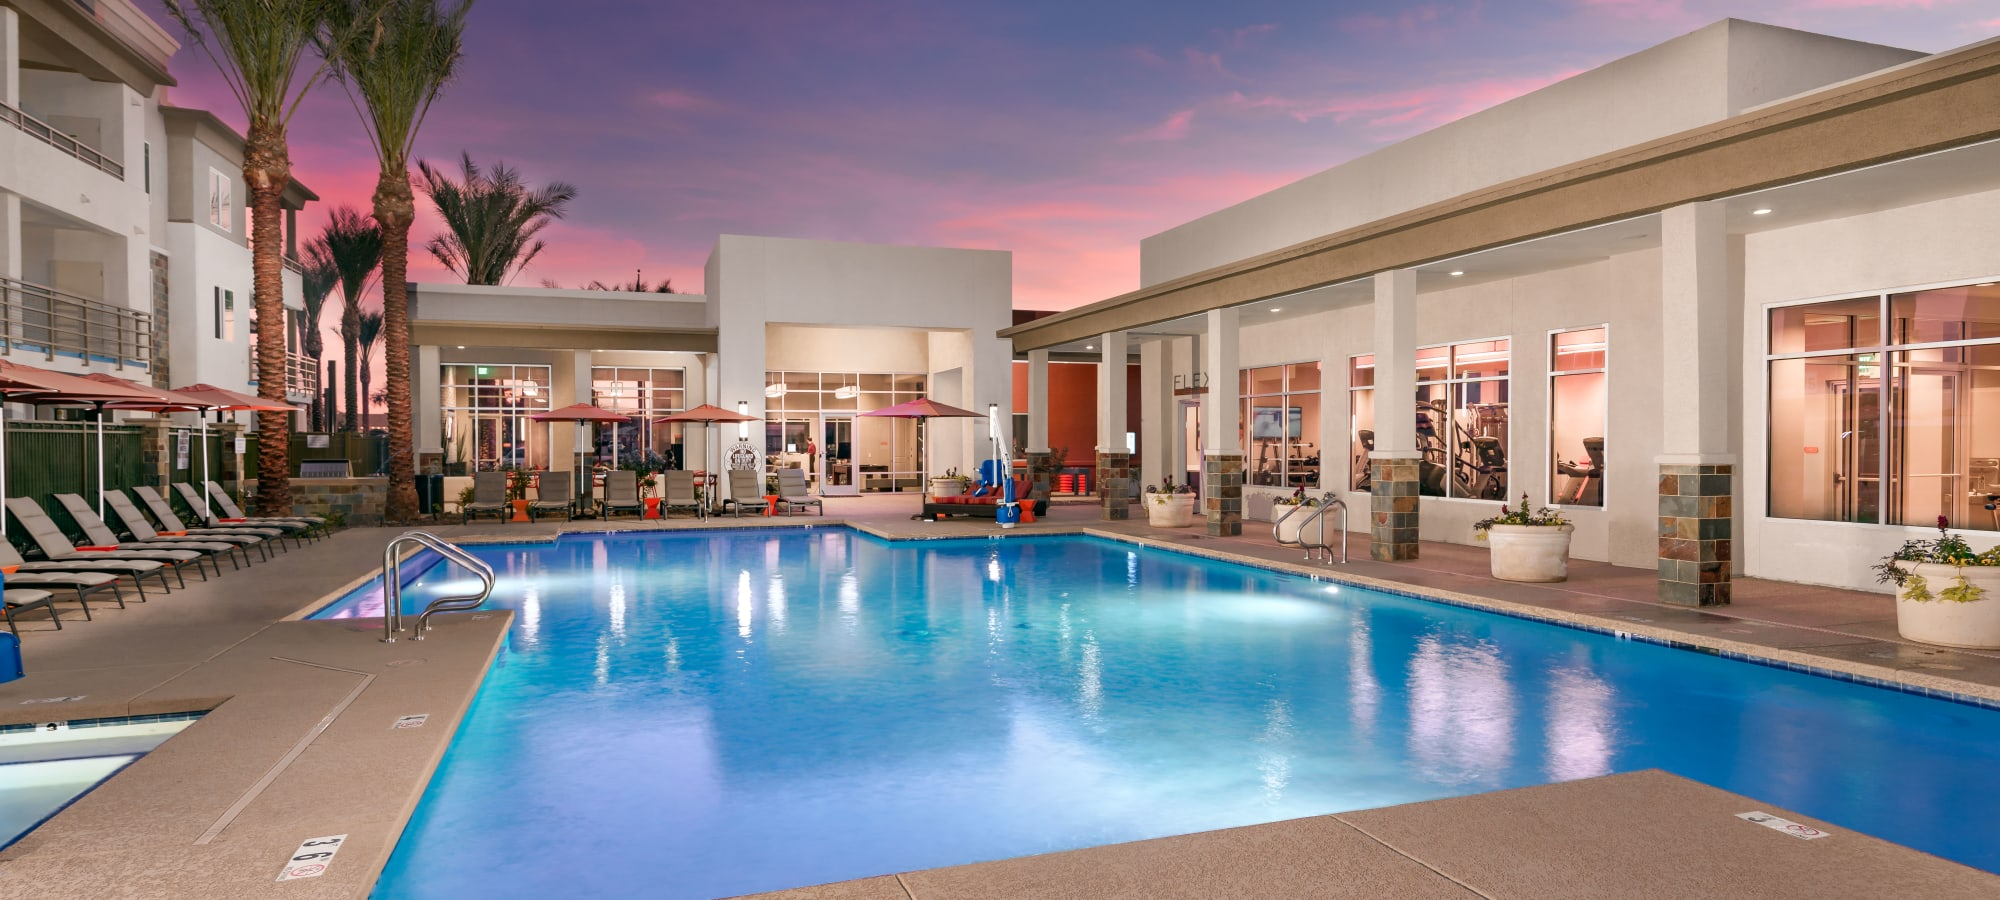 Resort-style swimming pool with a sundeck at Morrison Chandler in Chandler, Arizona